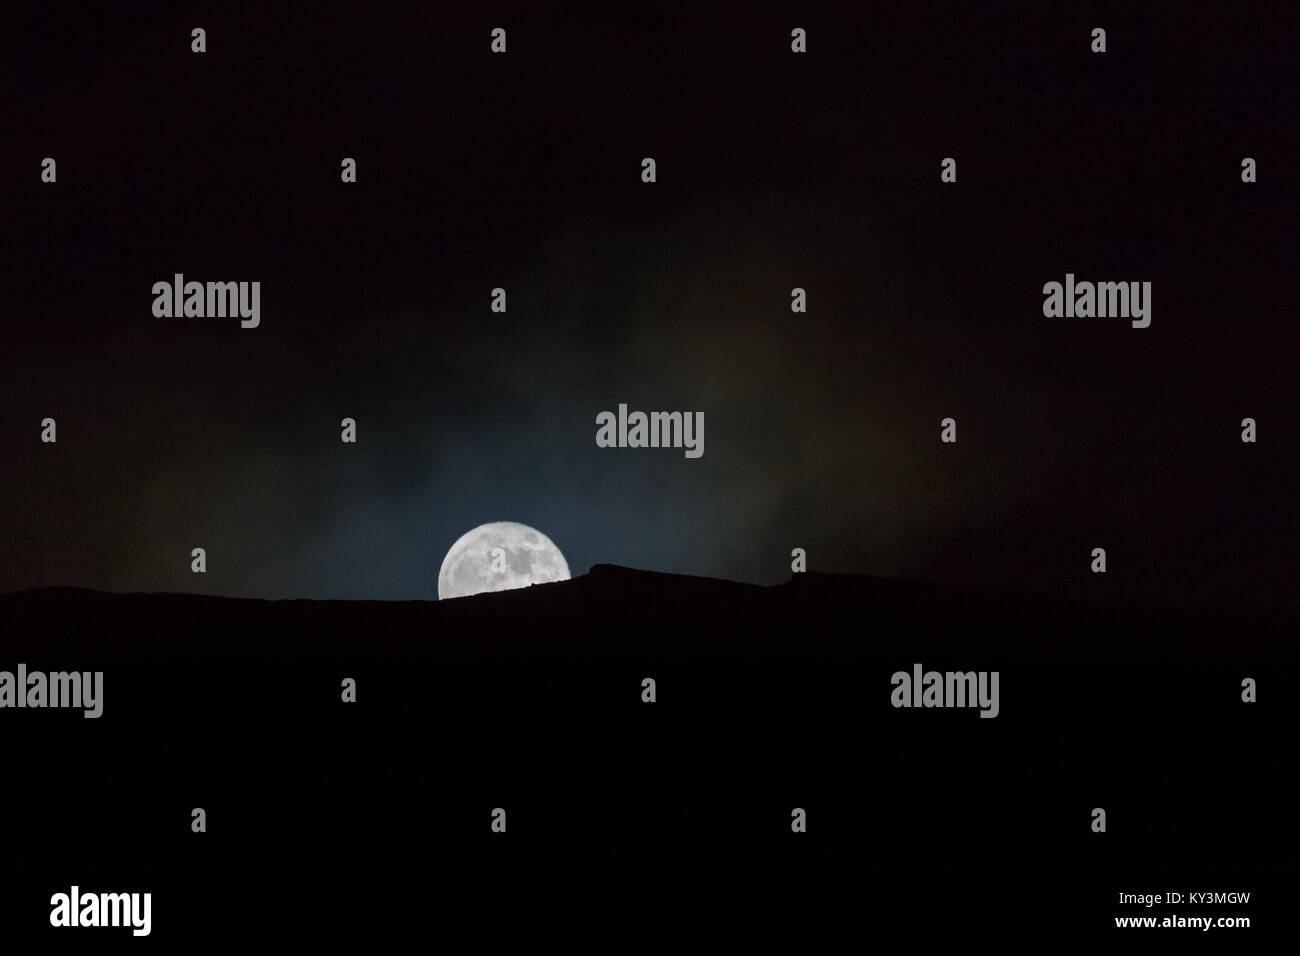 Full moon rising over a silhouetted ridge on a mountain with light mist and lunar craters visible - Stock Image